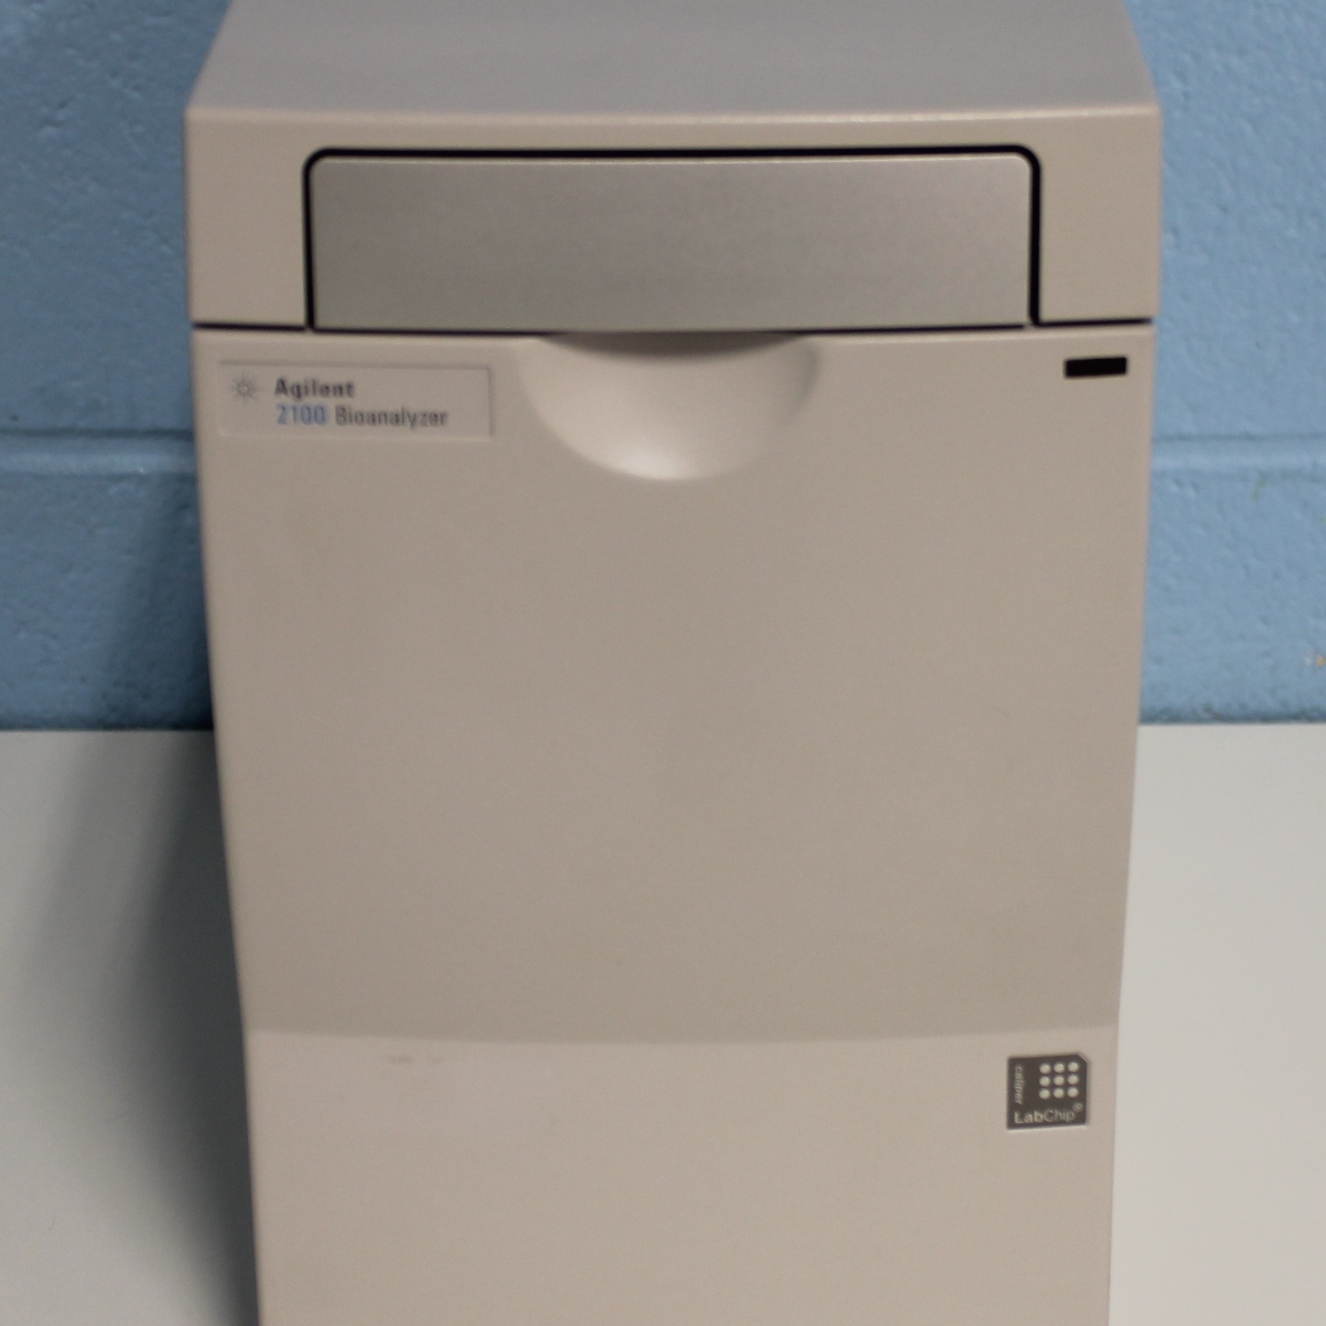 G2938C 2100 Bioanalyzer DNA Chip Reader